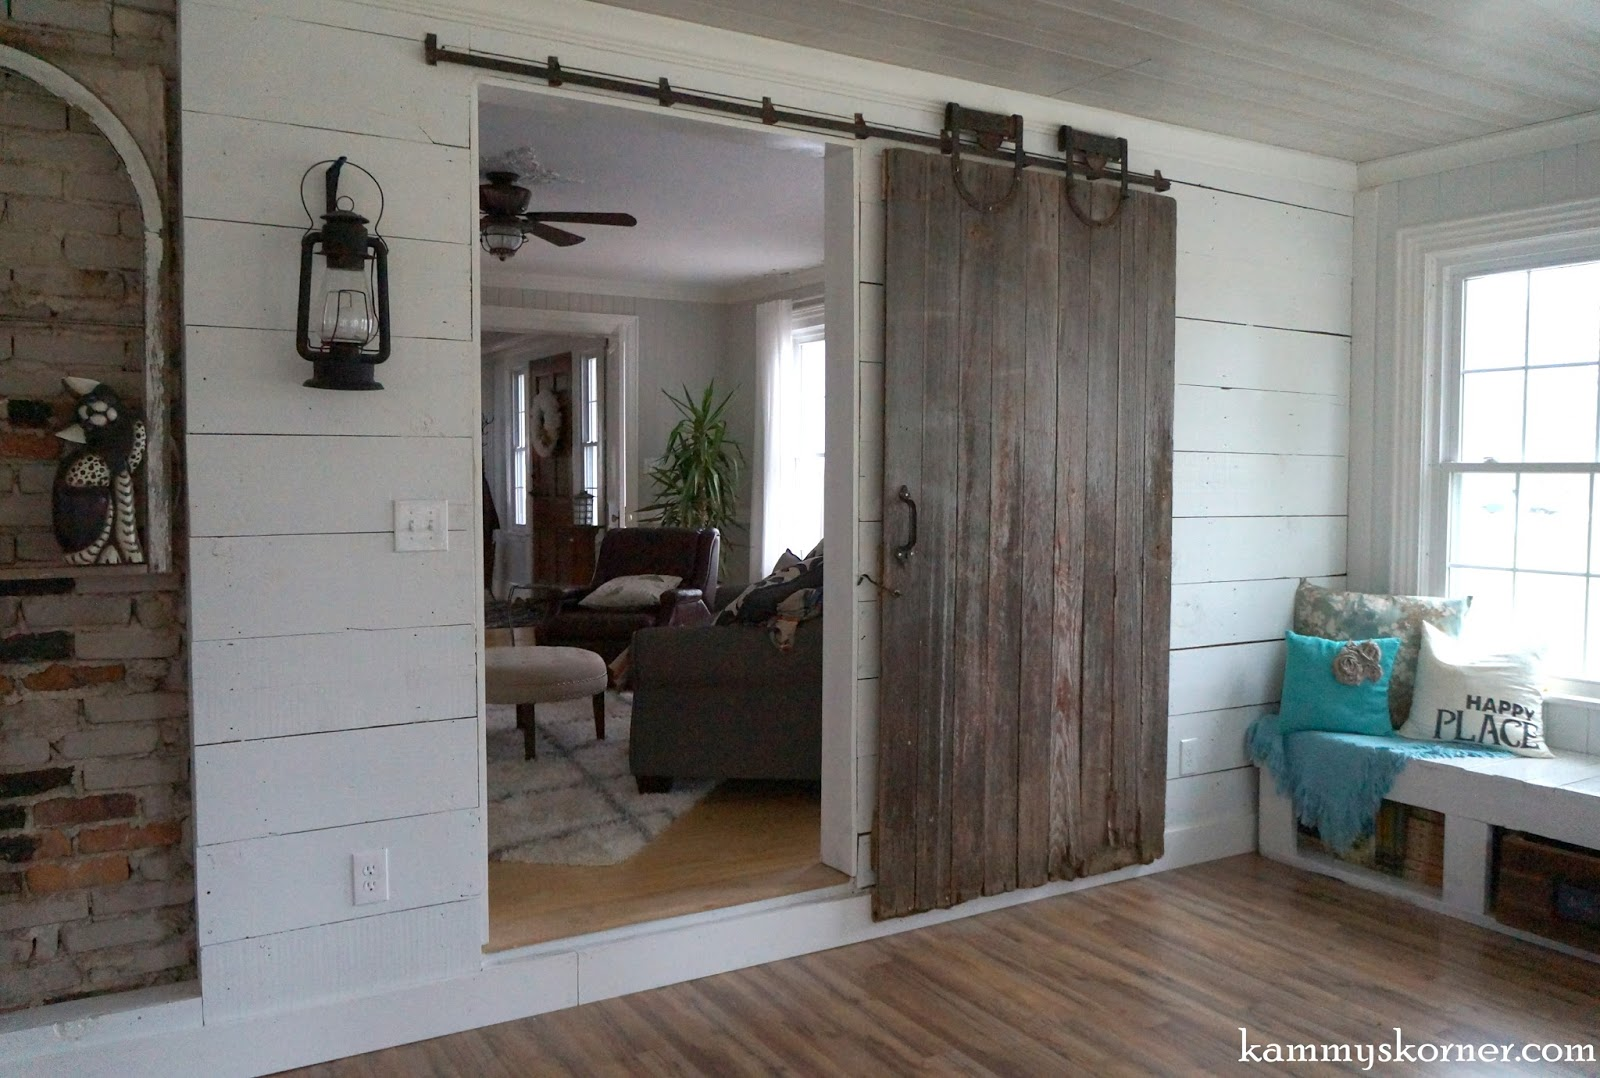 Close up of this super cool old hardware! & Kammy\u0027s Korner: Rescued Barn Door From a Forsaken Iowa Farm Pezcame.Com